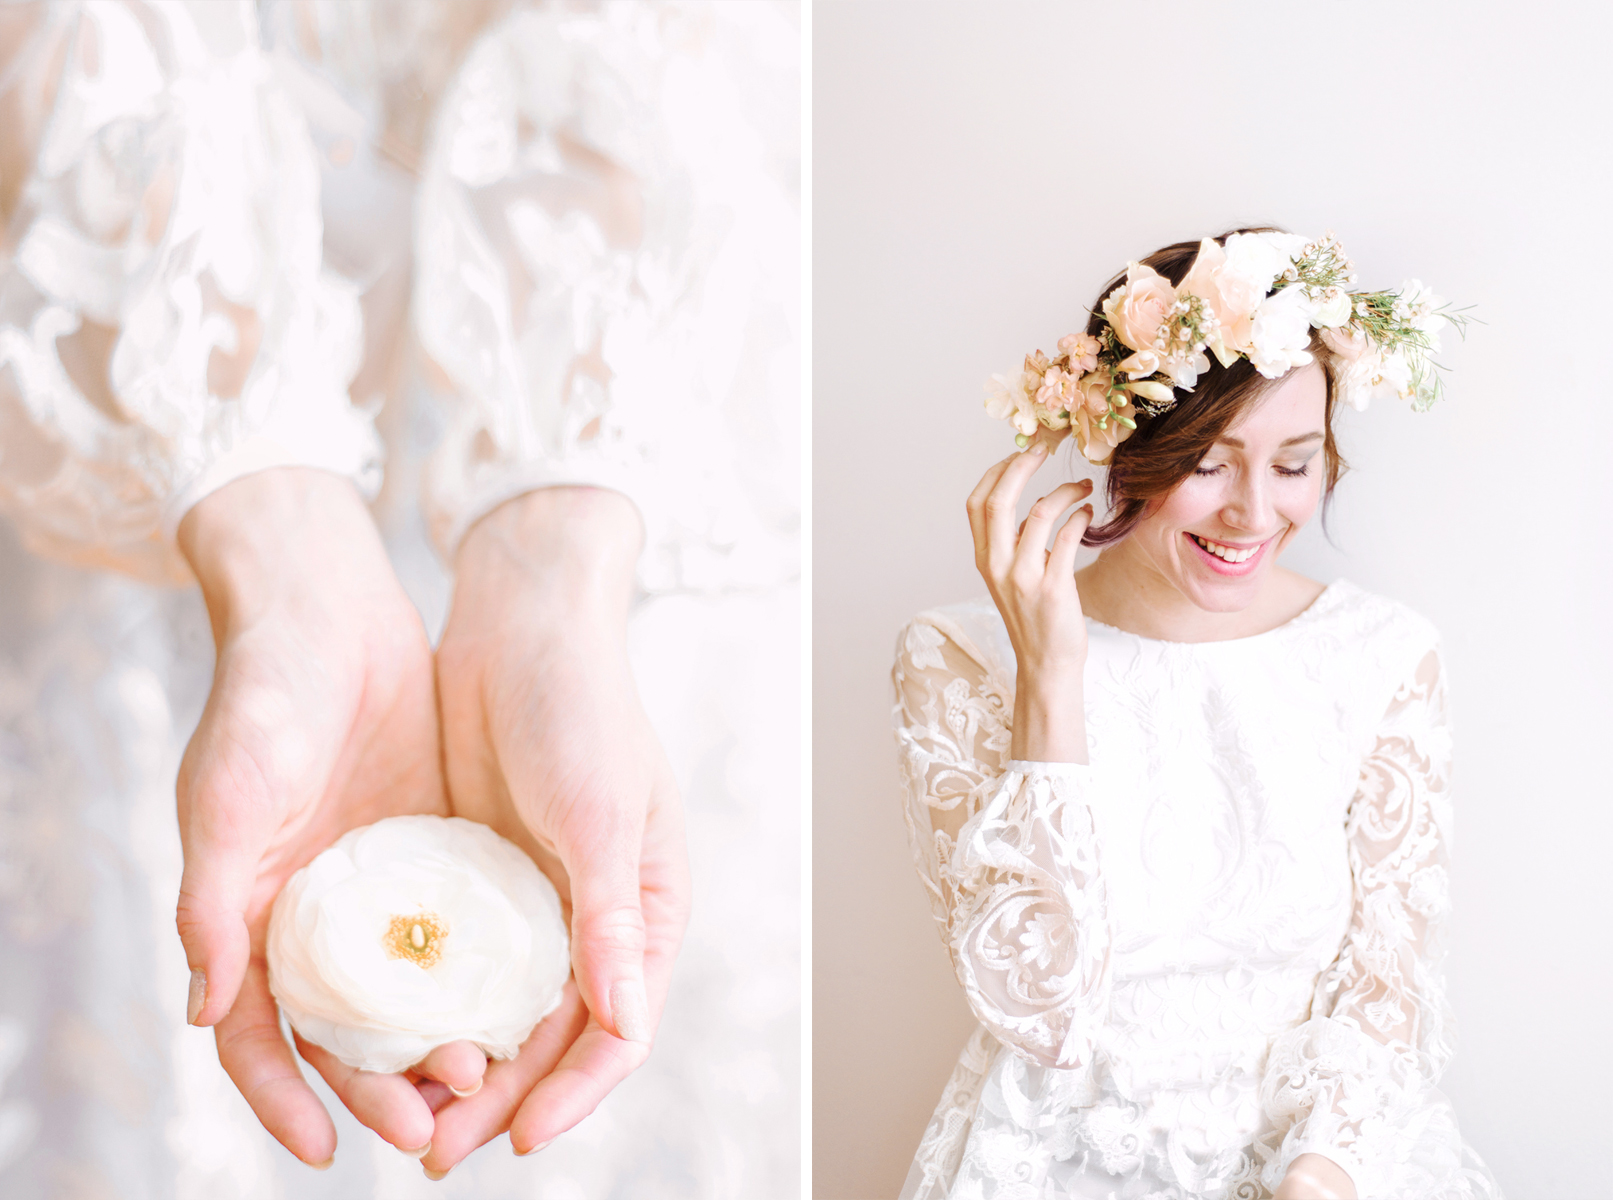 Whimsical Flower Crown By Art Of You Floristics Art Bouquet